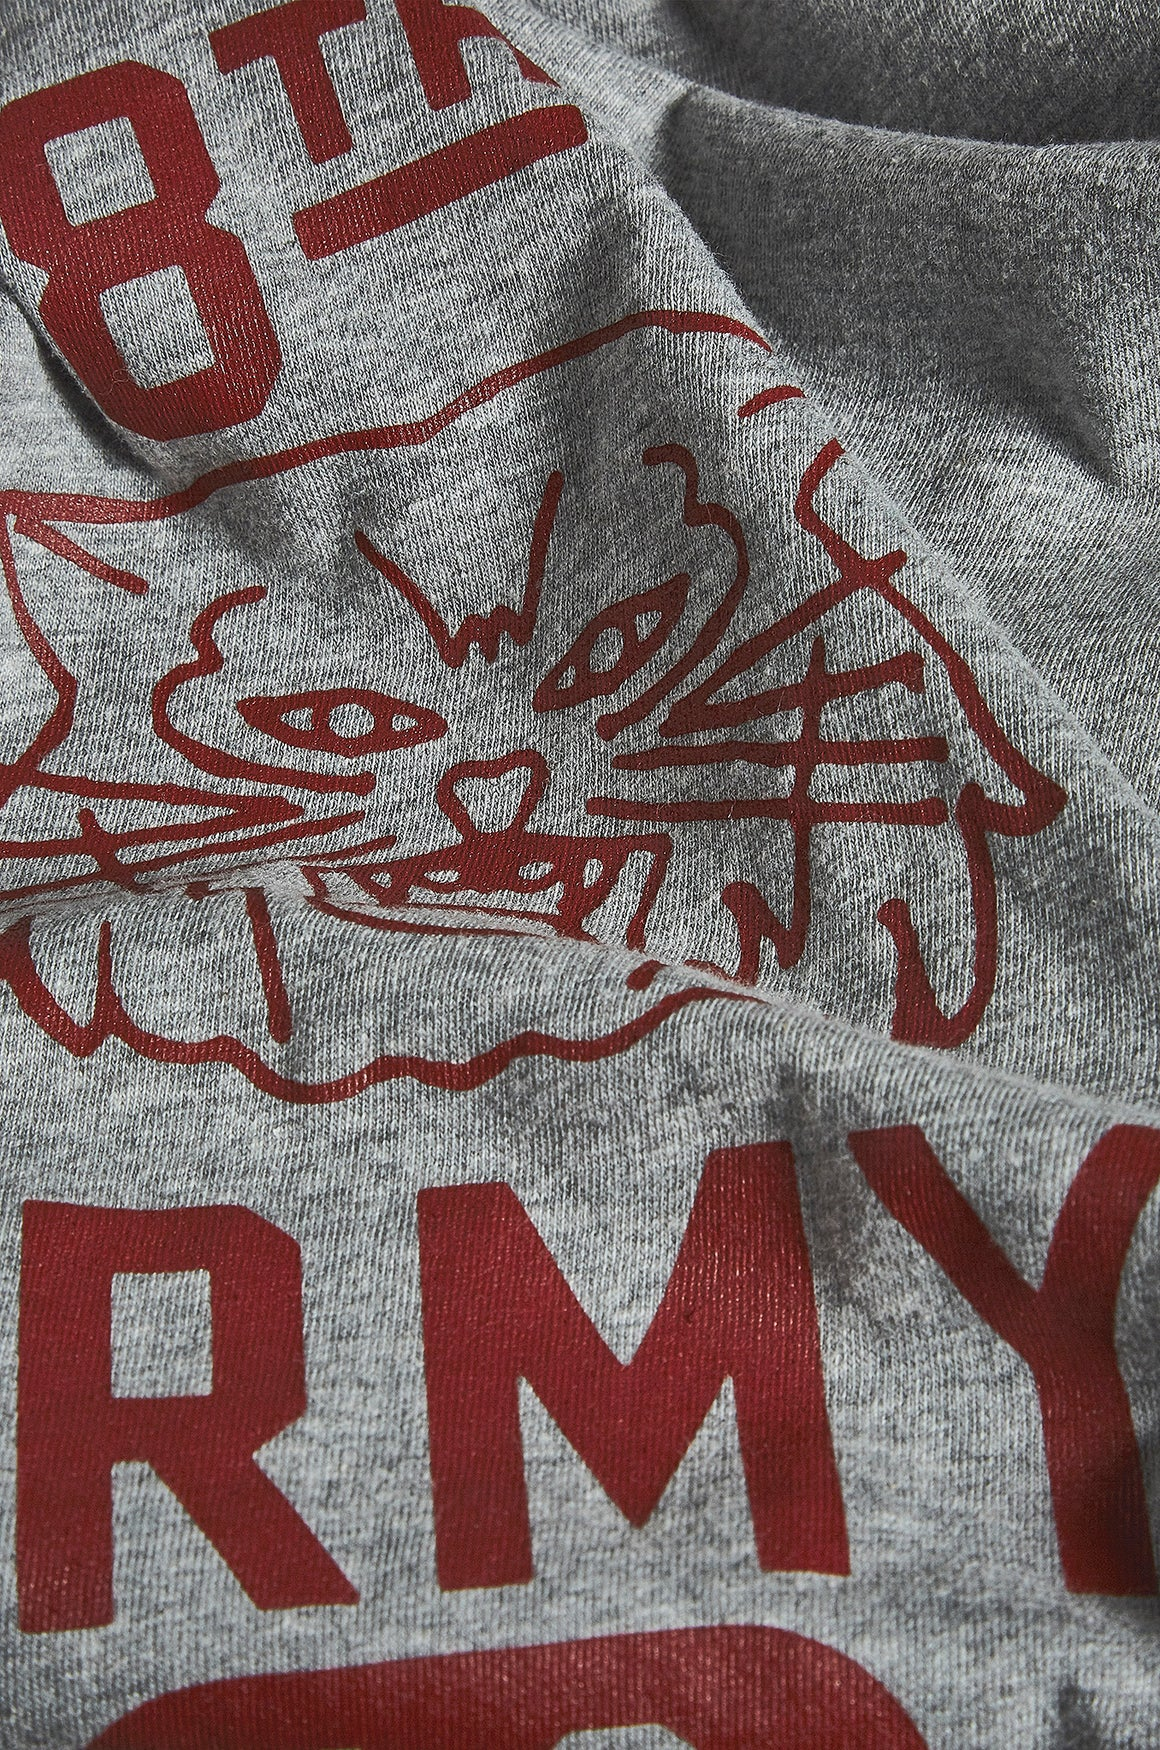 Grey Marl tee with USAAF tiger motif design in red